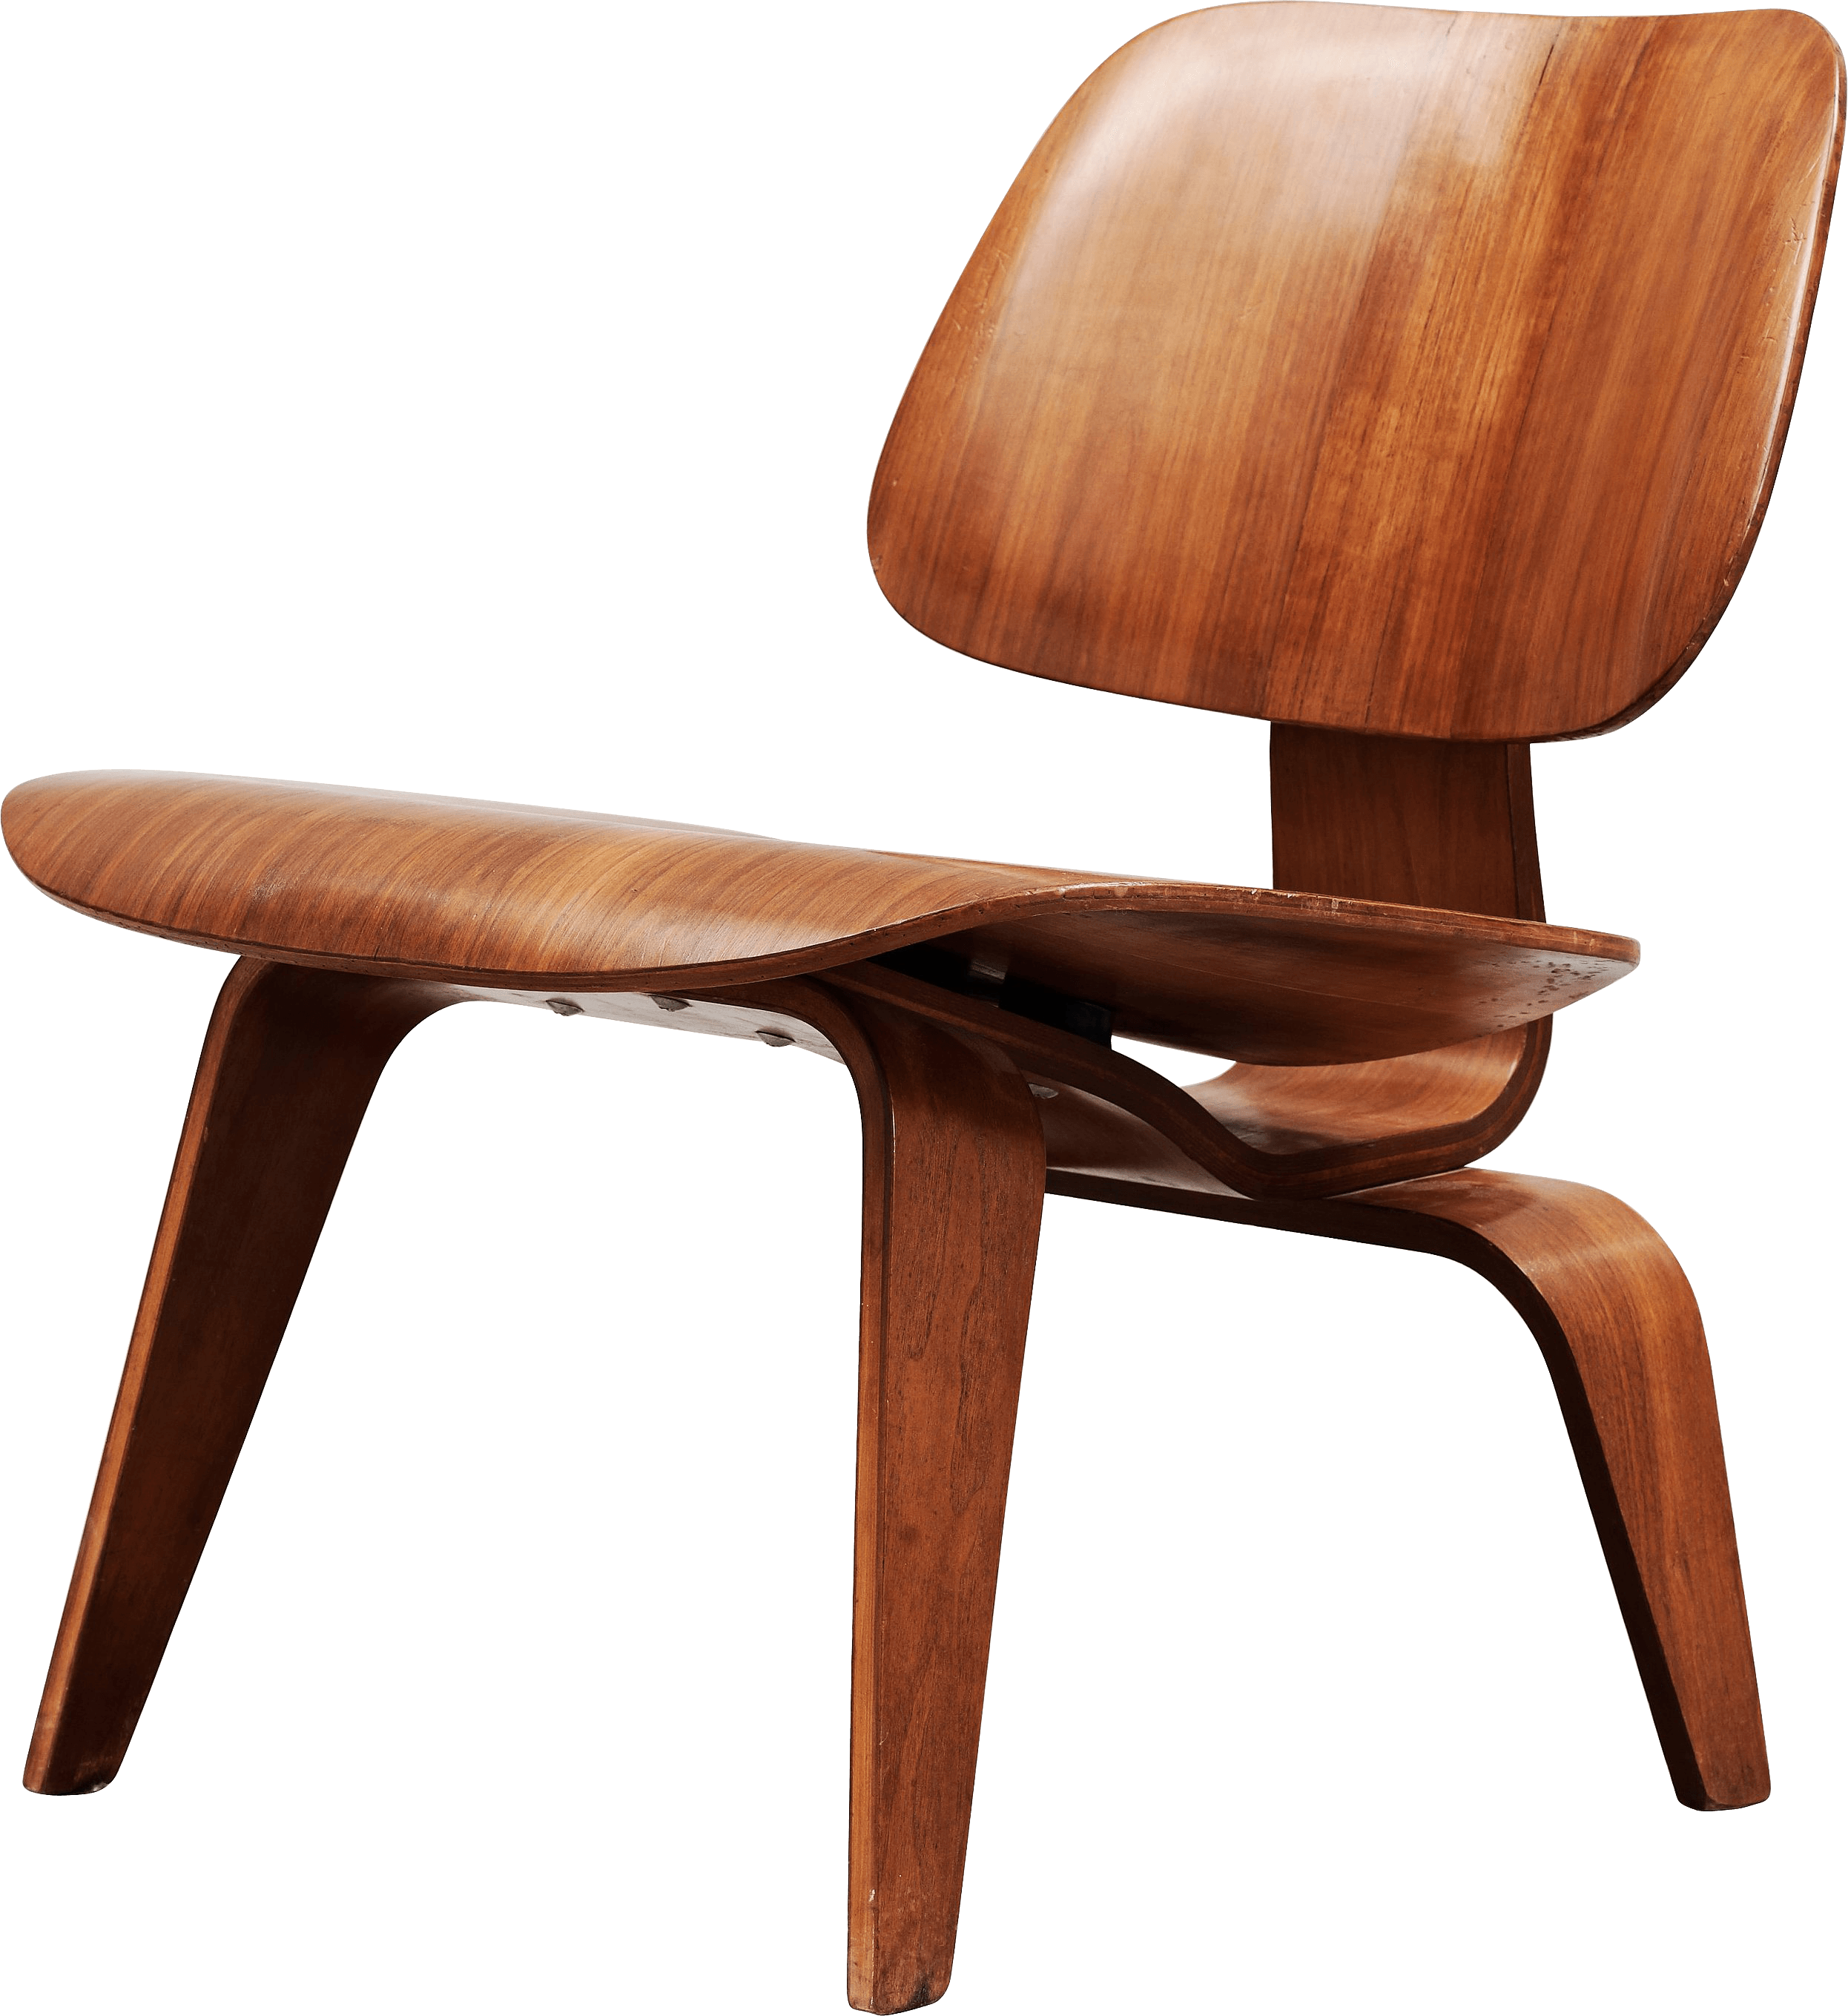 Wooden Stool Chair Transparent PNG